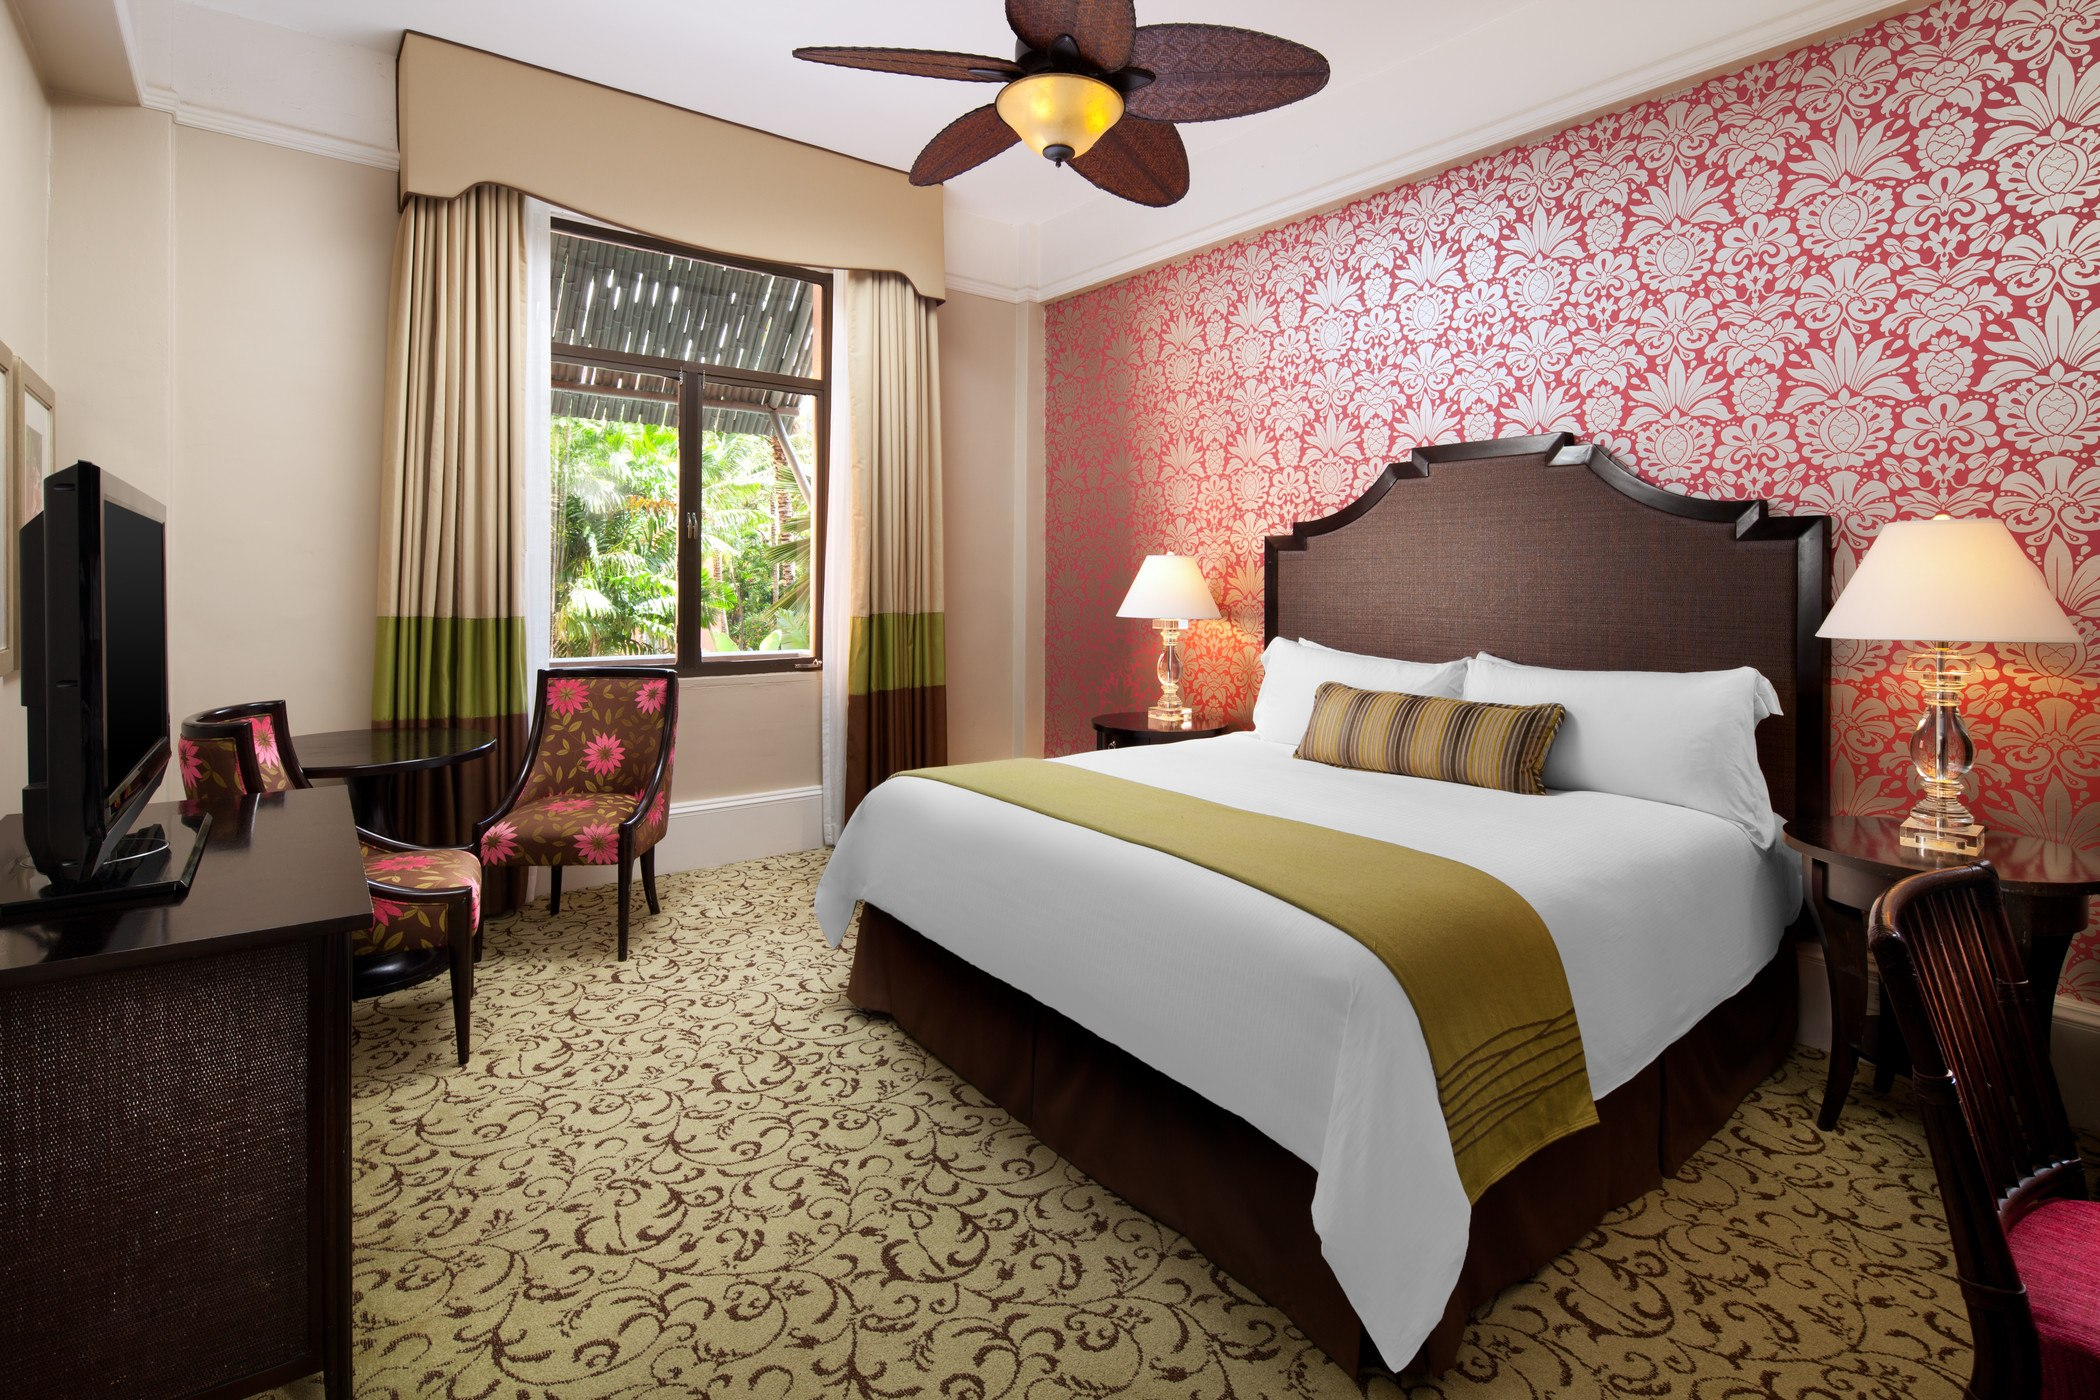 hotel room with king bed, red and white flowered wallpaper and garden view window